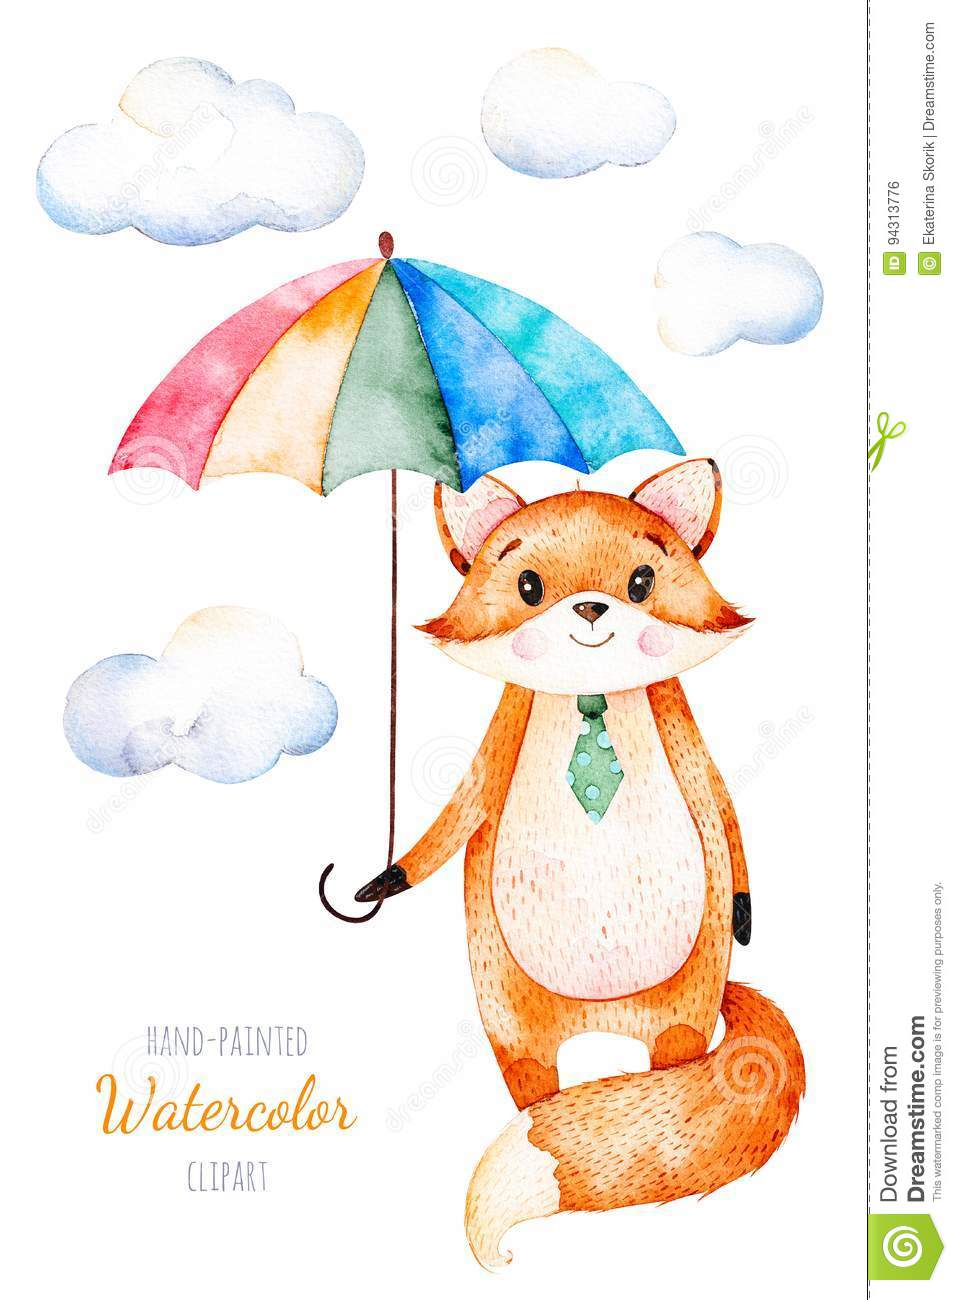 Watercolor illustration.Cute little Fox with multicolored umbrella